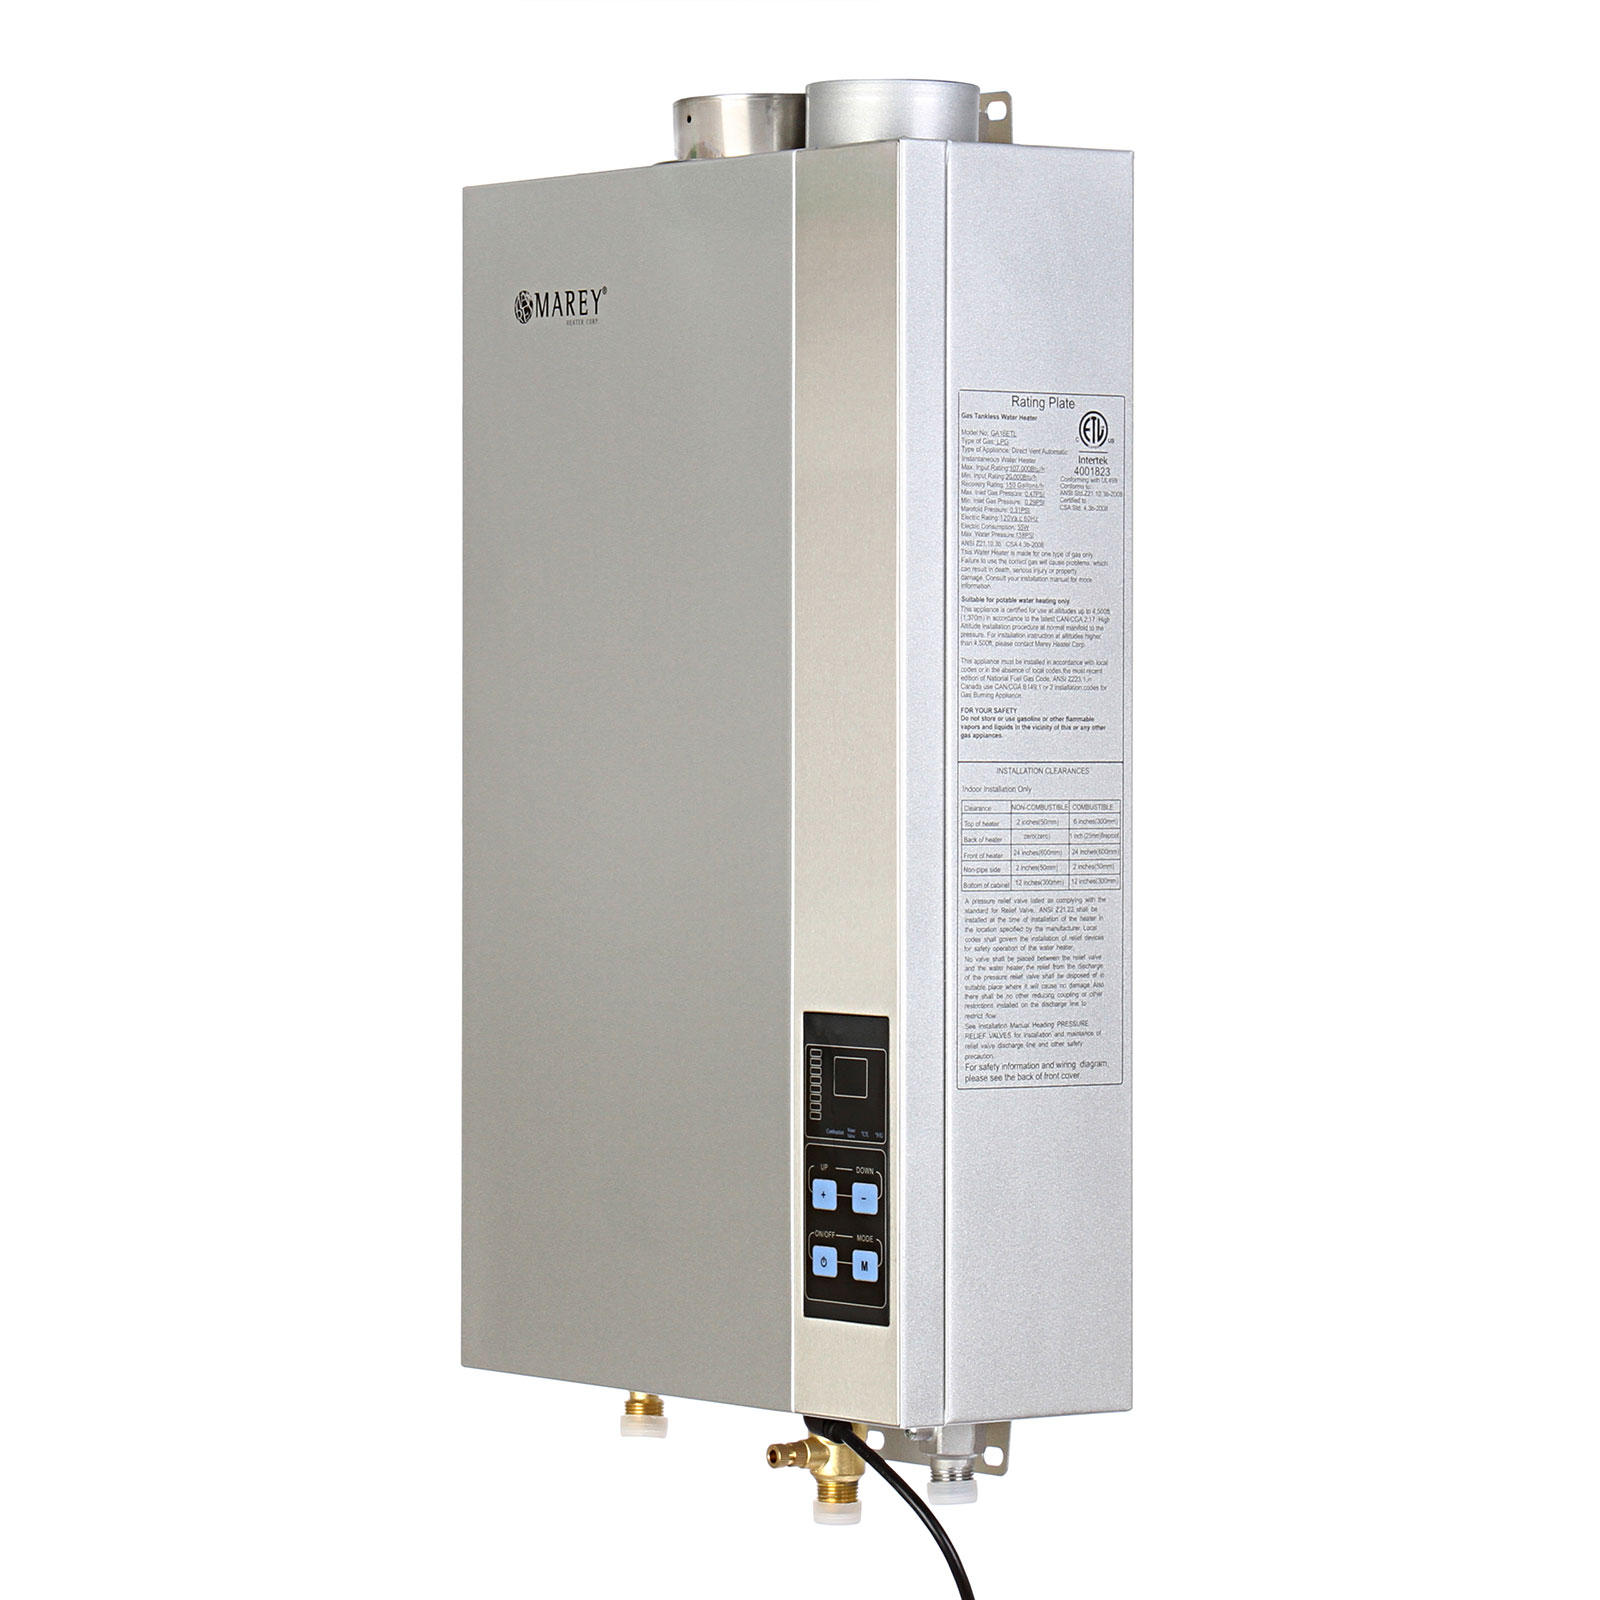 Atmor 13kw 240 Volt 225 Gpm Electric Tankless Water Heater With Home Electrical Wiring Diagrams Pressure Relief Device On Demand